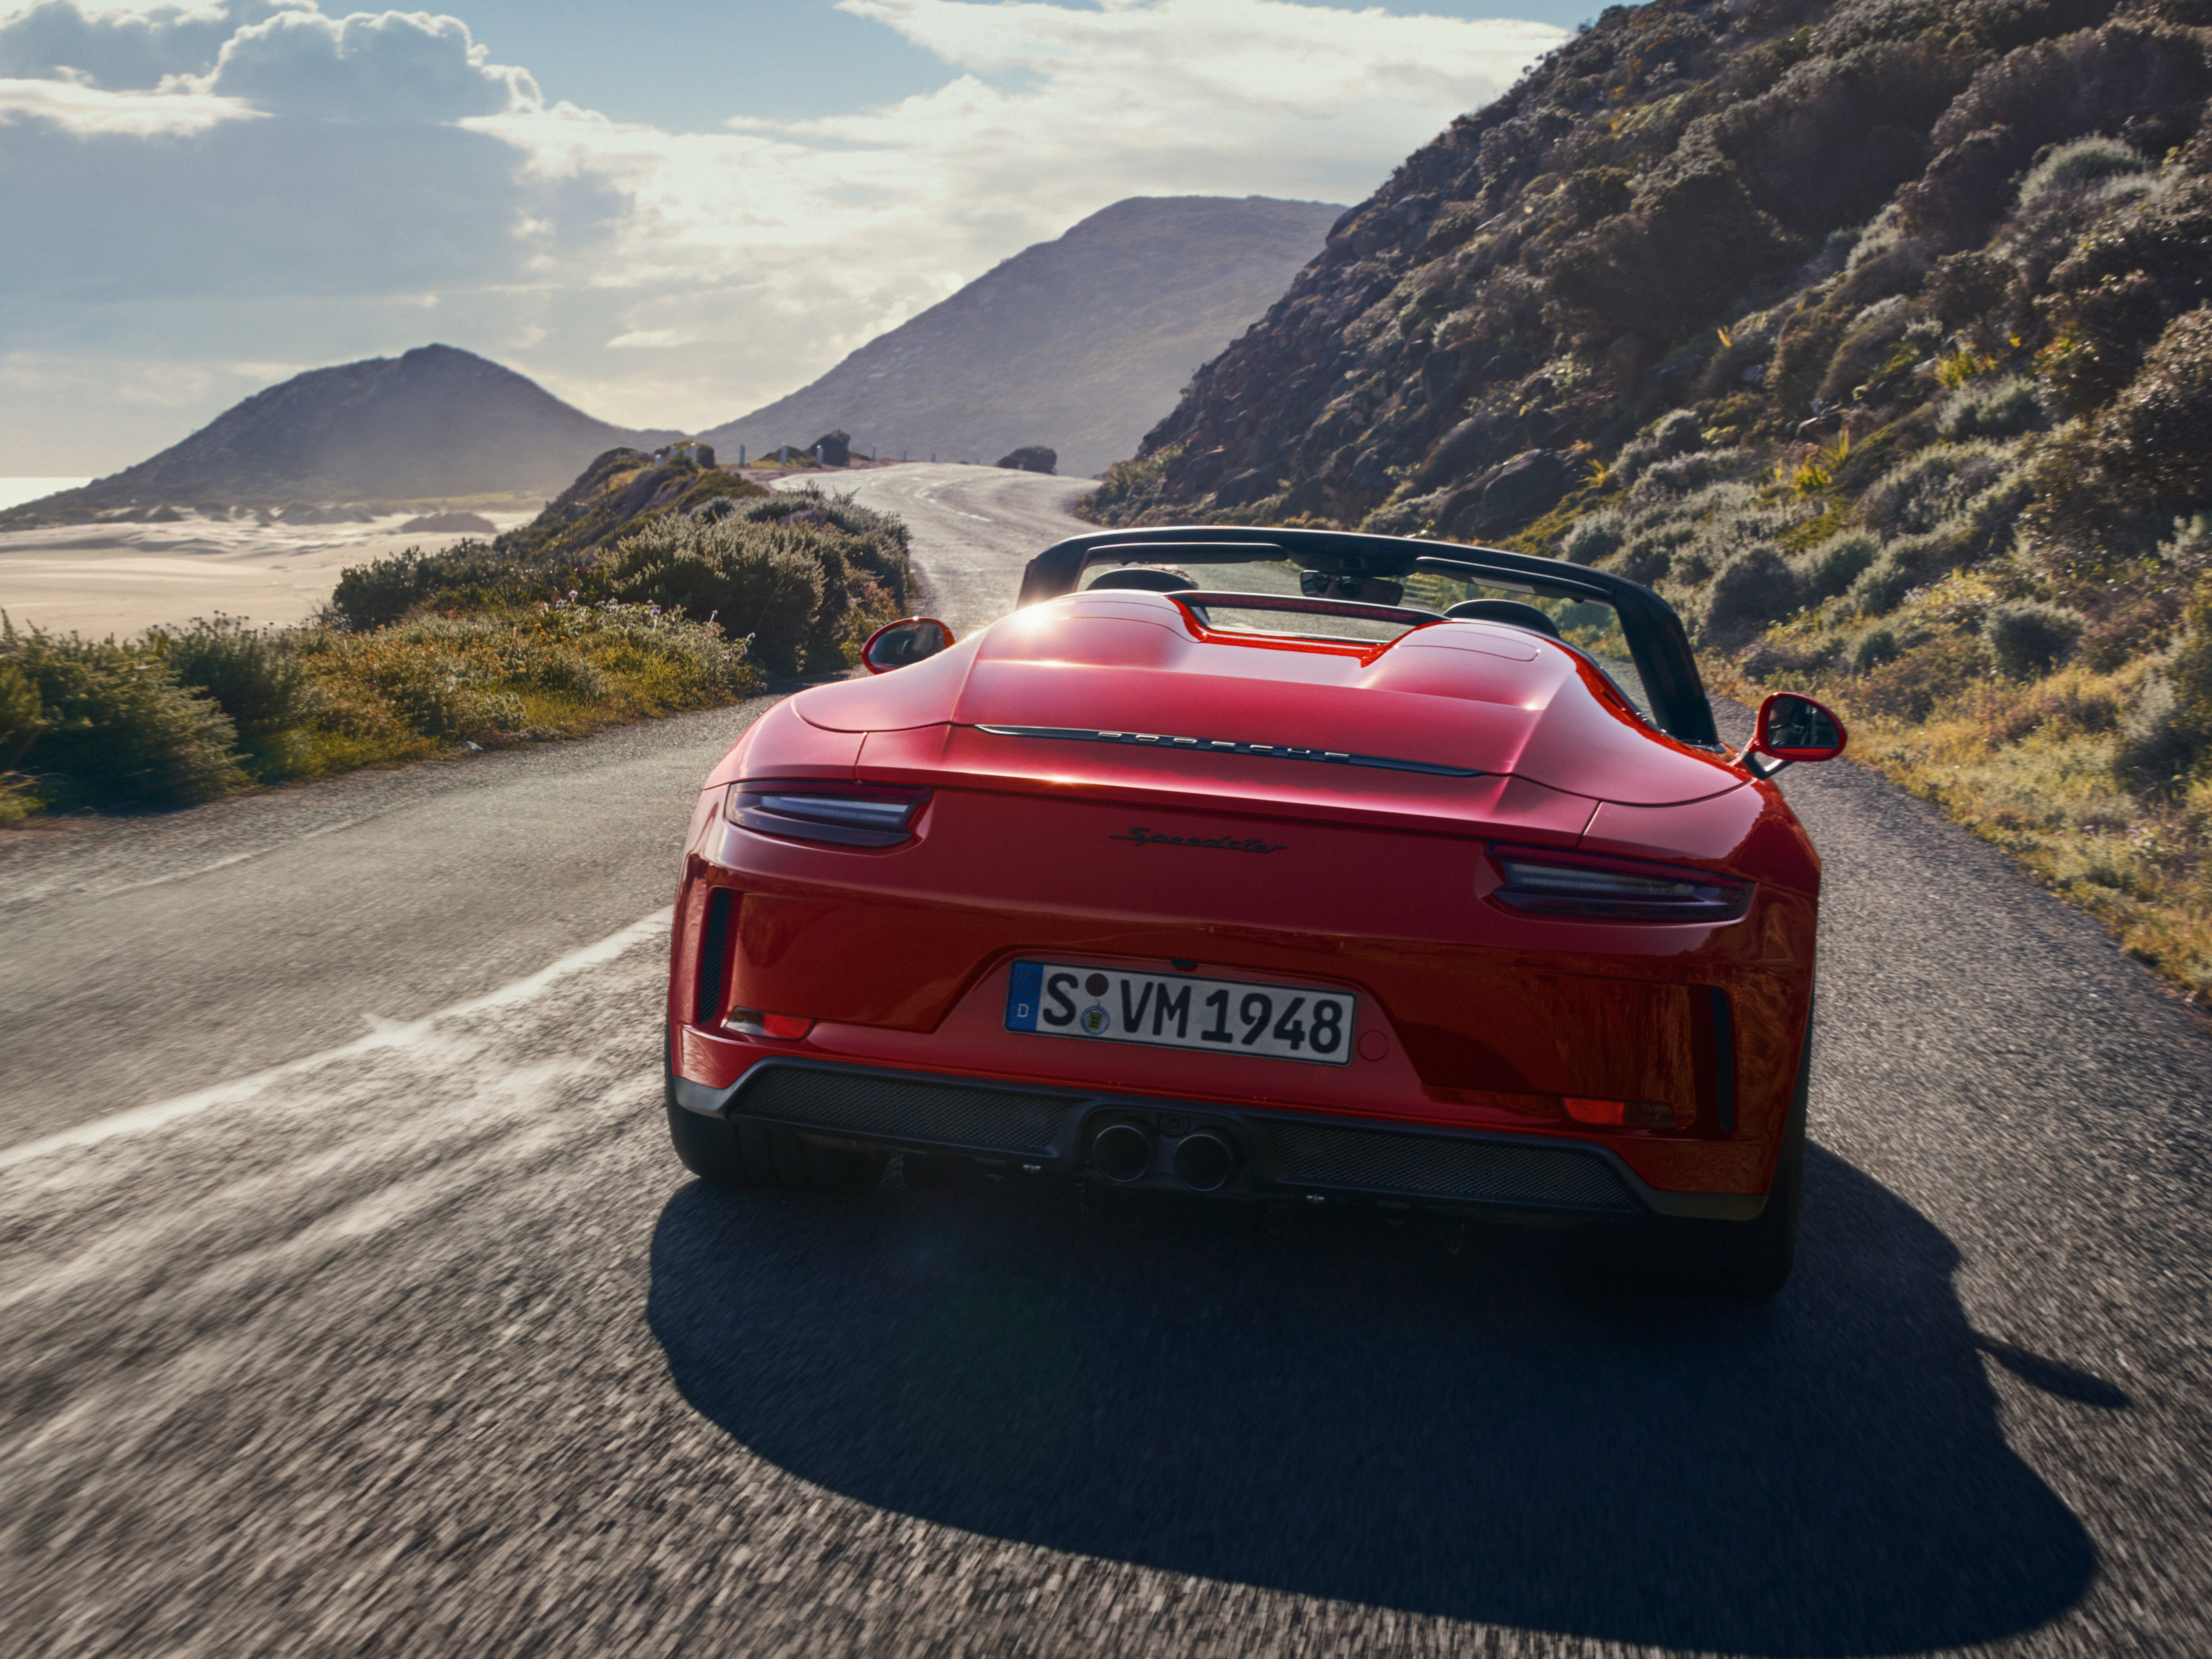 The sportscar's bodyshell is based on the 911 Carrera 4 Cabriolet with its hood and fenders made of carbon fiber. And the chassis was taken from the 911 GT3. Porsche says its red paintwork is a reference to the 1988 911 Speedster of the G-Model generation. Porsche's 911 Speedster will be on display at the New York Auto Show.